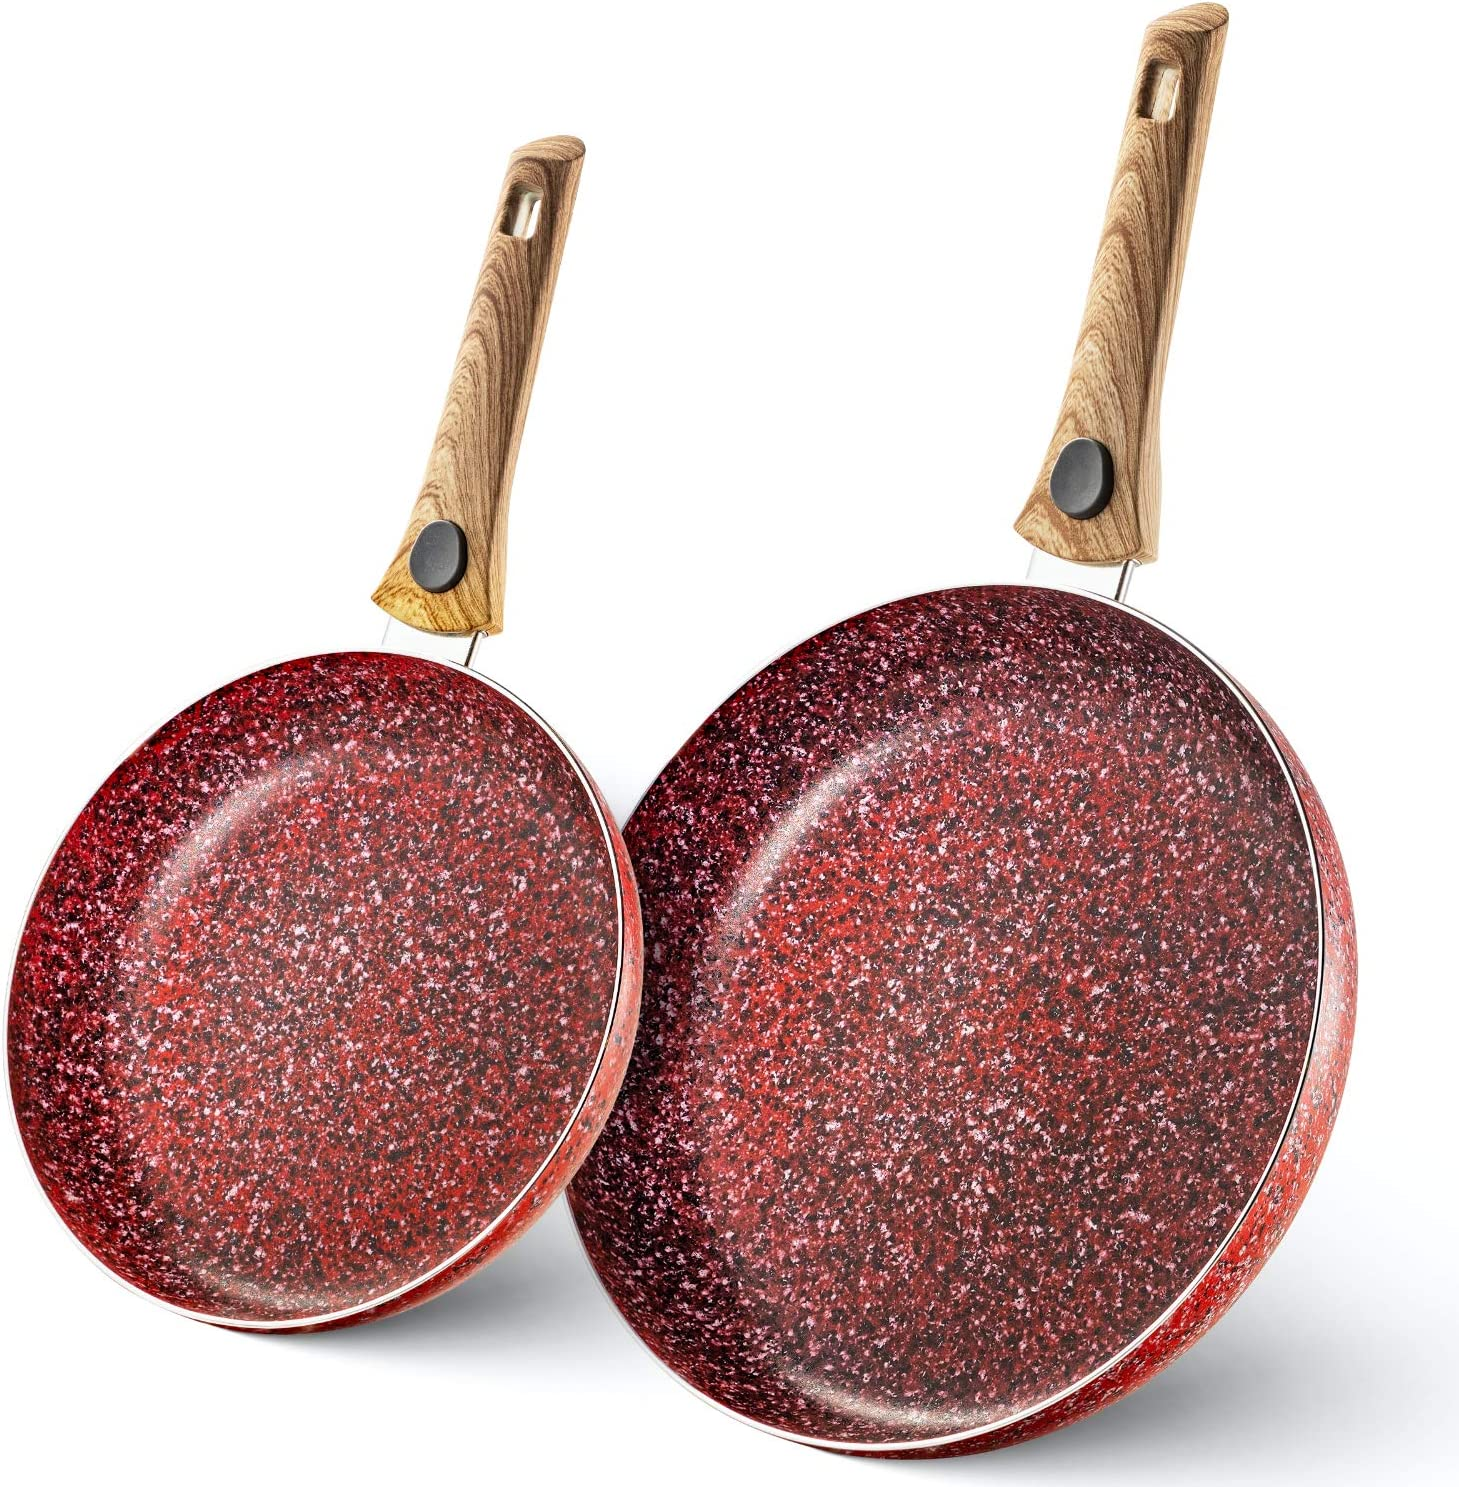 Mitbak 10 & 12 Inch Non-Stick Frying Pans (Red) | Set Of 2 Granite Coating Nonstick Skillet with REMOVABLE Heat-Resistant Wooden Handle | Premium Cooking & Kitchen Utensil | Induction Compatible